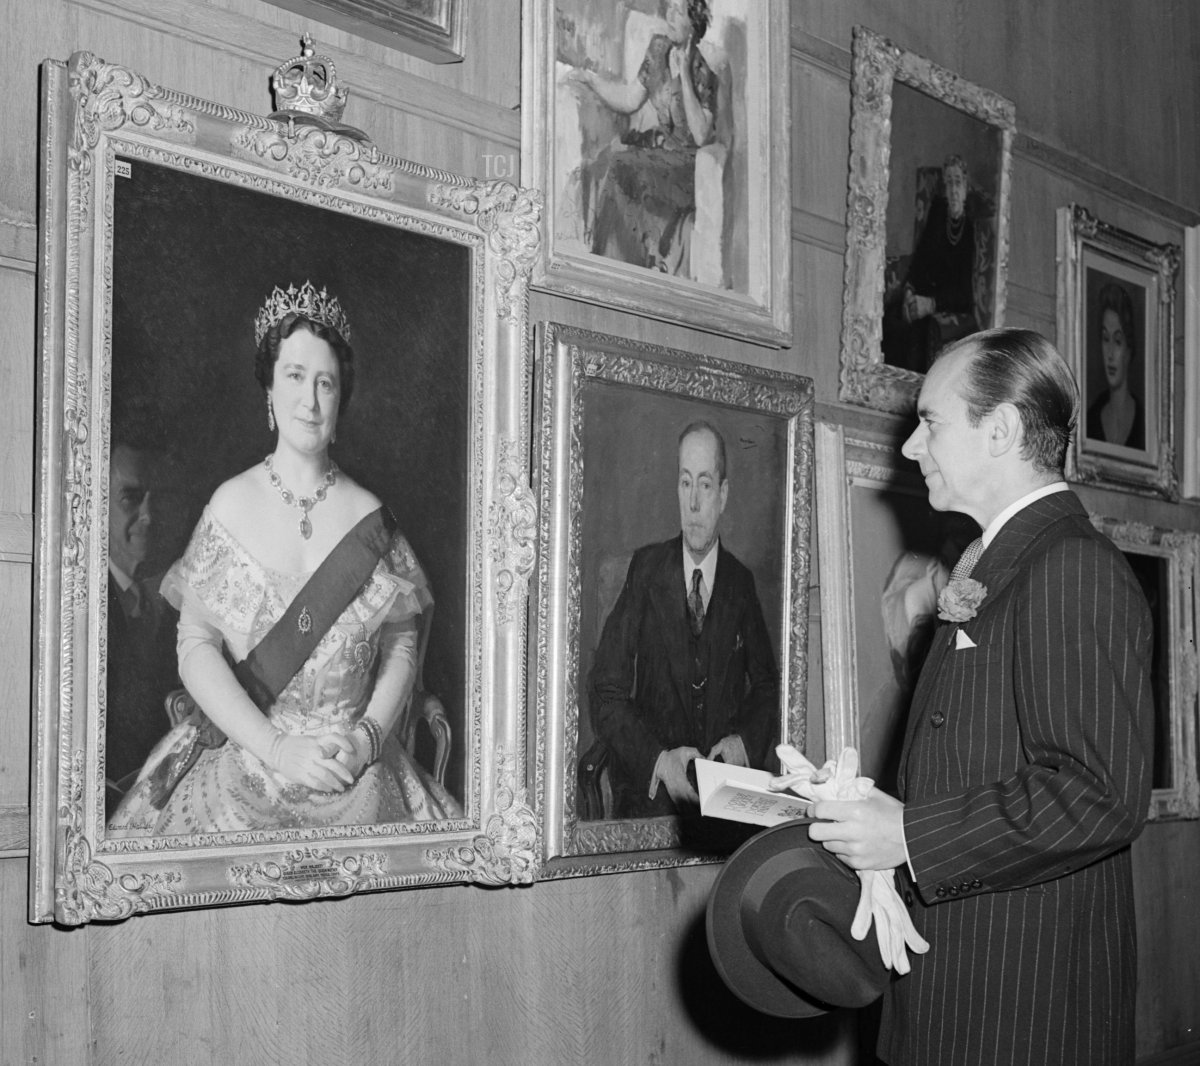 20th November 1953: British conductor Malcolm Sargent (1895 - 1967) examines the portrait of the Queen Mother by Edward I Halliday at the Annual Exhibition of the Royal Society of Portrait Painters at the Royal Institute Galleries, London